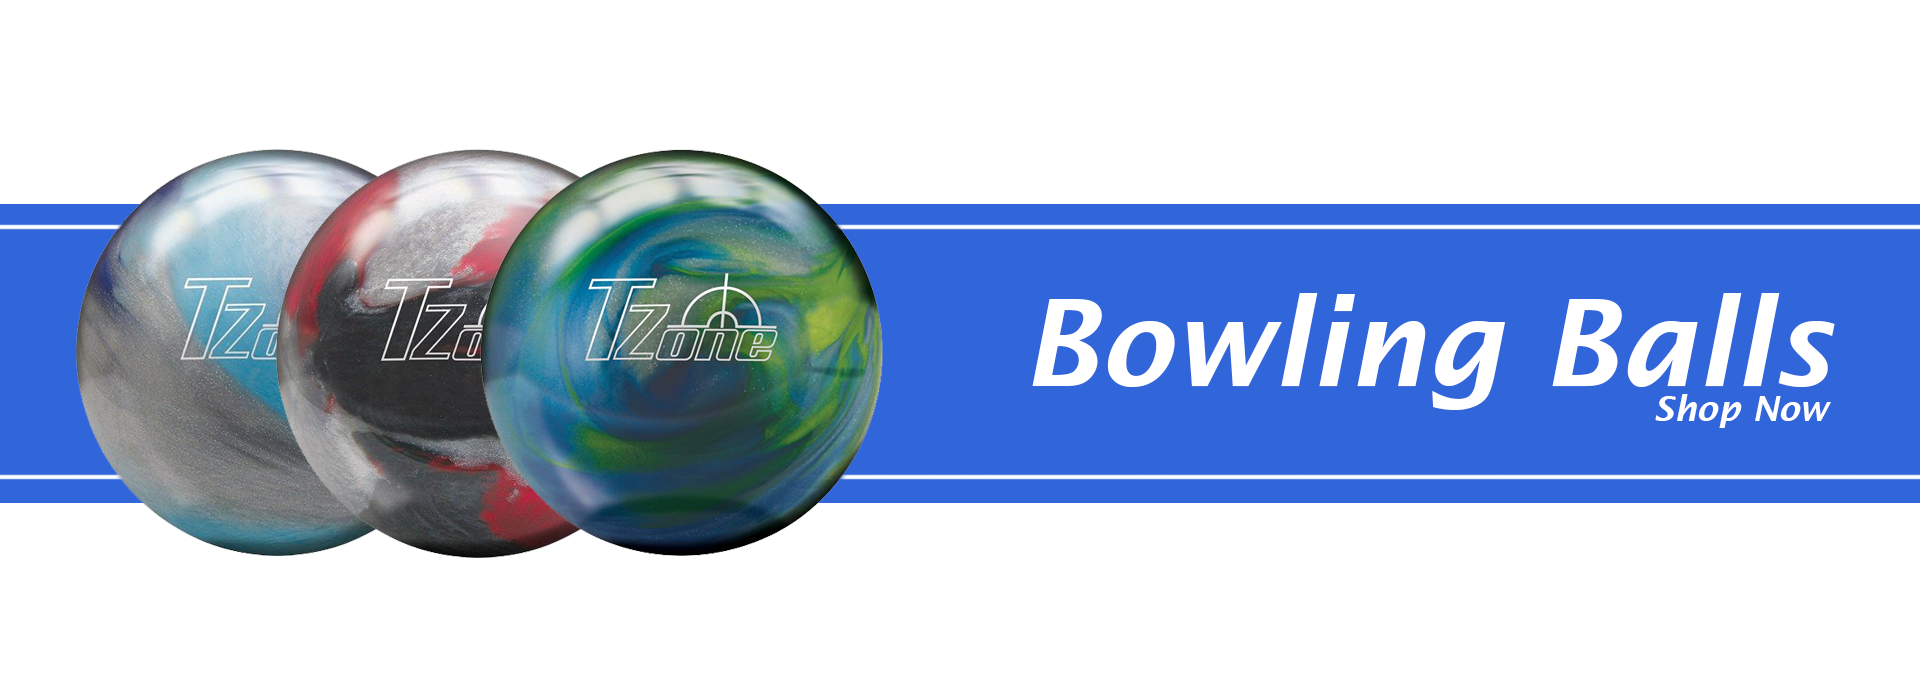 Bowling Balls Banner: Links to Bowling Balls Category